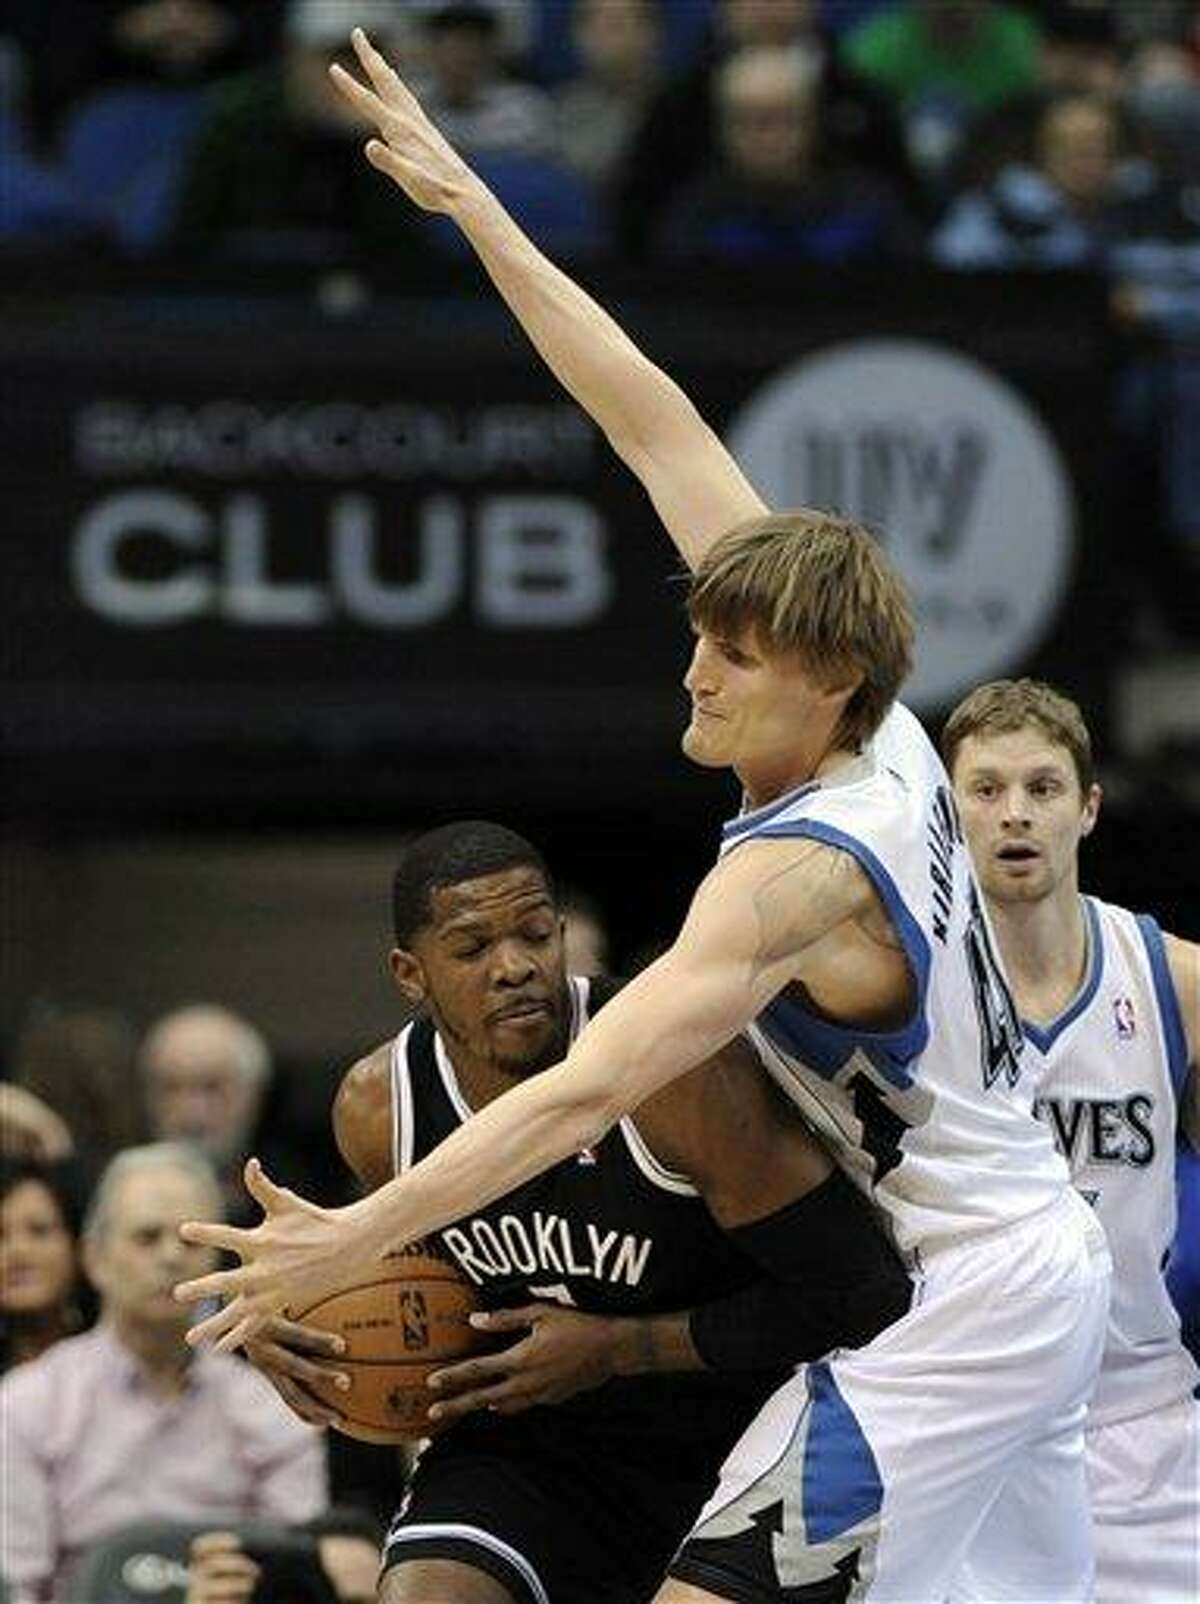 Brooklyn Nets' Joe Johnson, left, assumes a low profile as Minnesota Timberwolves' Andrei Kirilenko, of Russia, looms over him and Luke Ridnour, right, looks on in the first half of an NBA basketball game on Wednesday, Jan. 23, 2013, in Minneapolis. (AP Photo/Jim Mone)